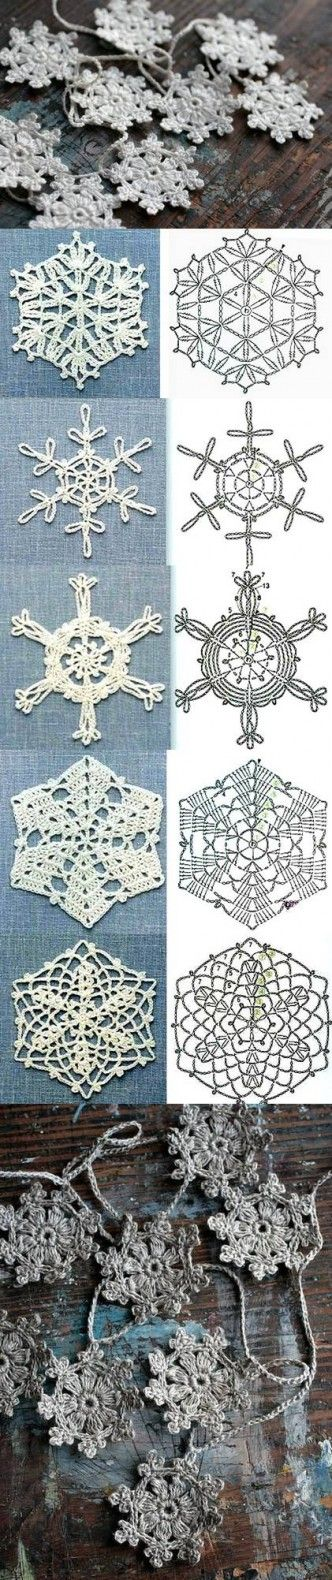 DIY Schemes Crochet Snowflakes DIY Projects